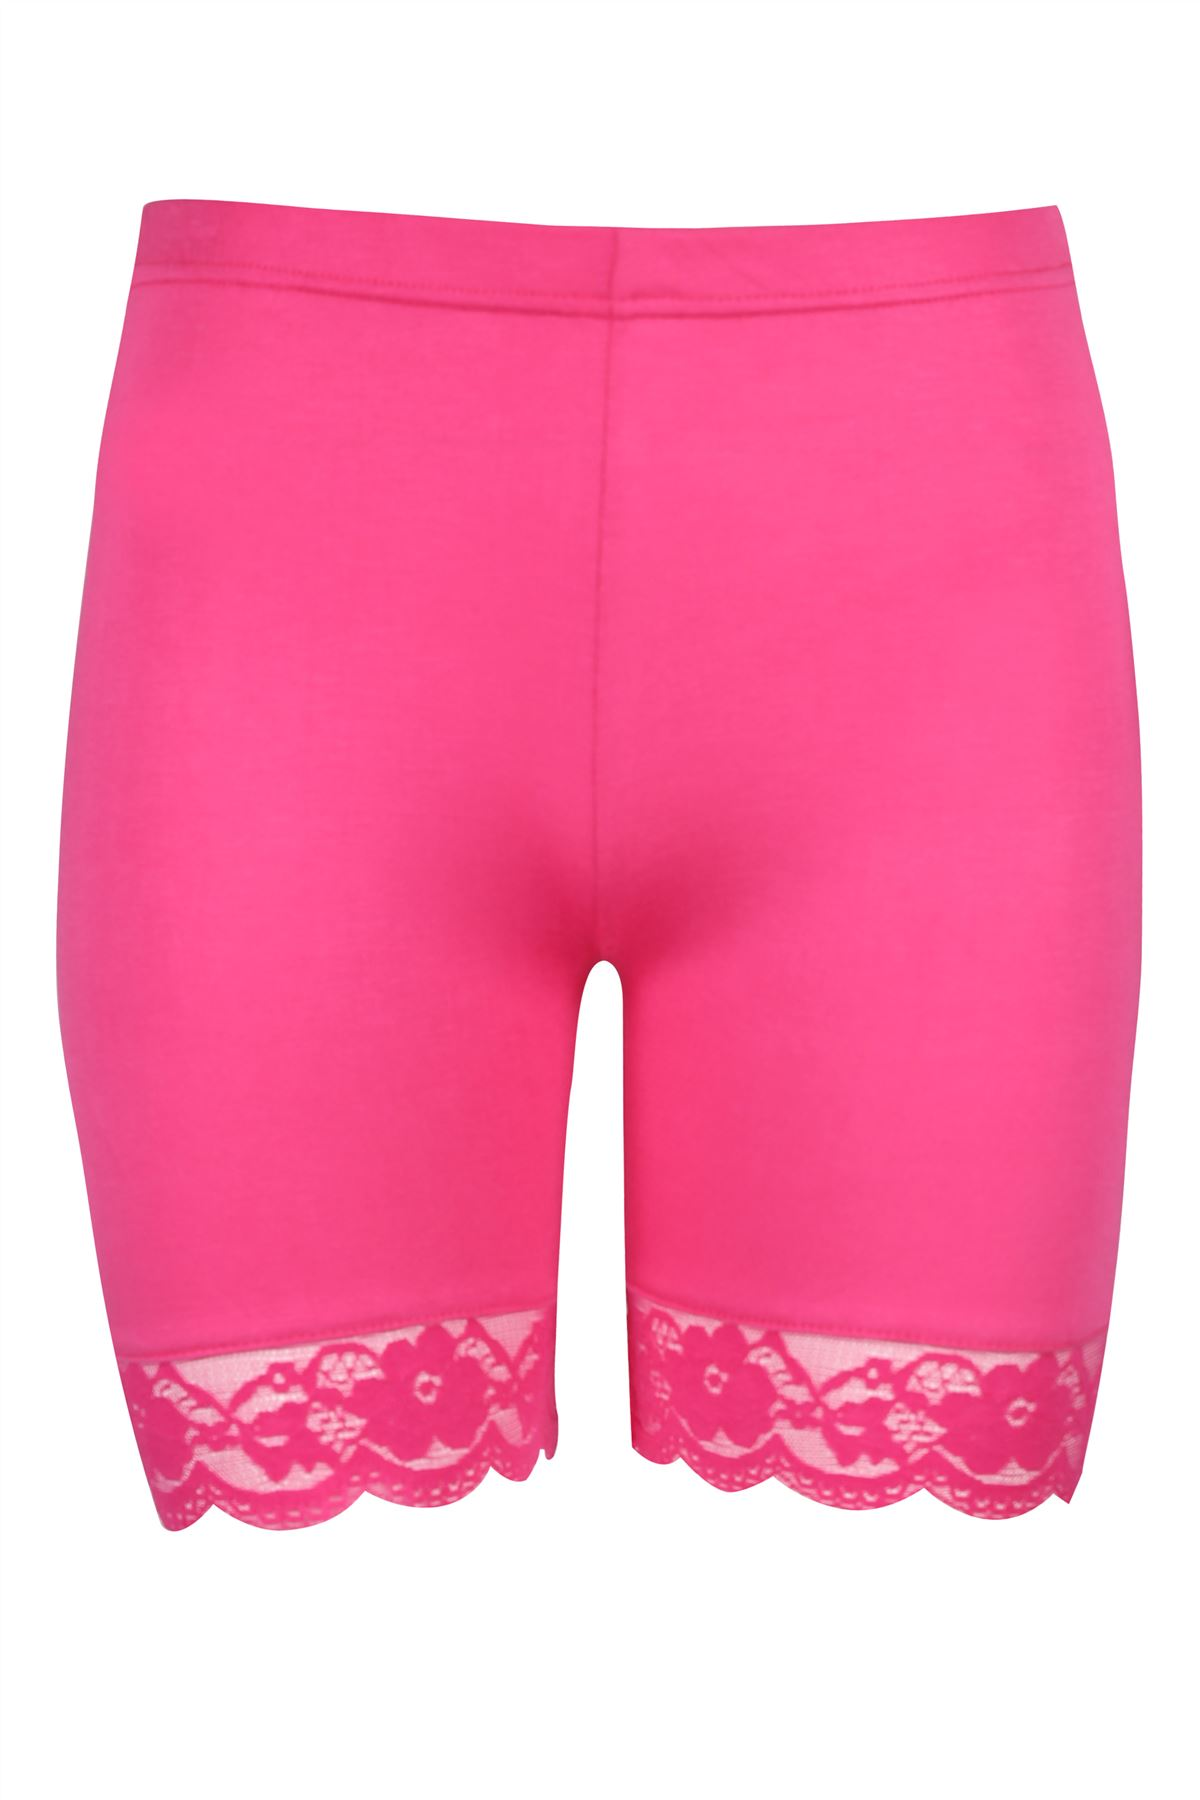 Find lace shorts for women at ShopStyle. Shop the latest collection of lace shorts for women from the most popular stores - all in one place.